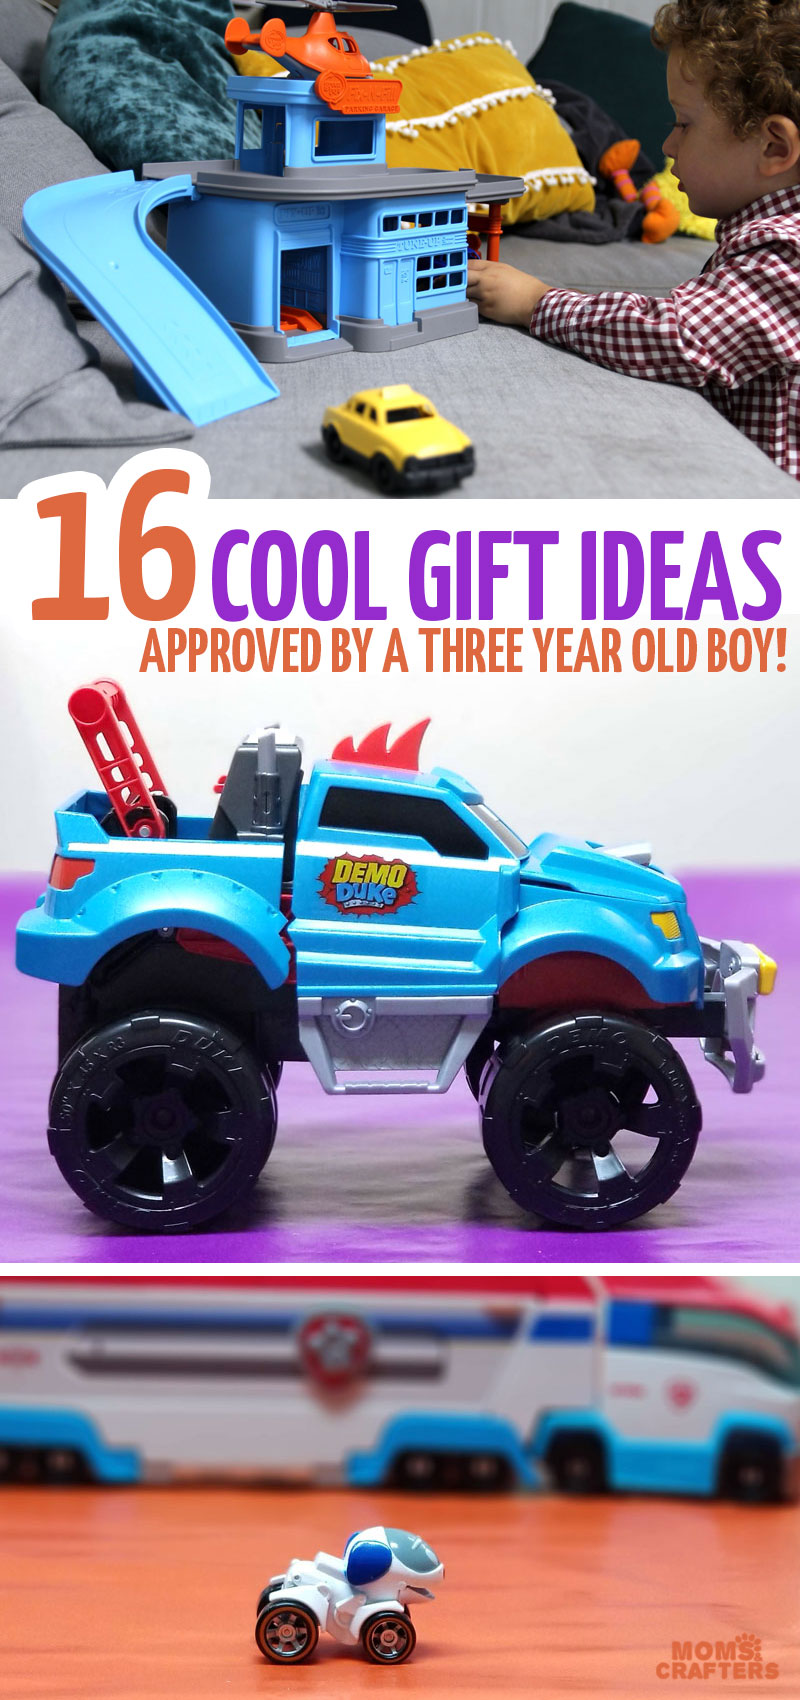 Click for the best birthday gifts for 3 year old boys that make great Christmas gifts and Chanukah gifts for older toddlers too! These sweet toy gift ideas are fun for kids who love cars, Paw Patrol, and anything in between.